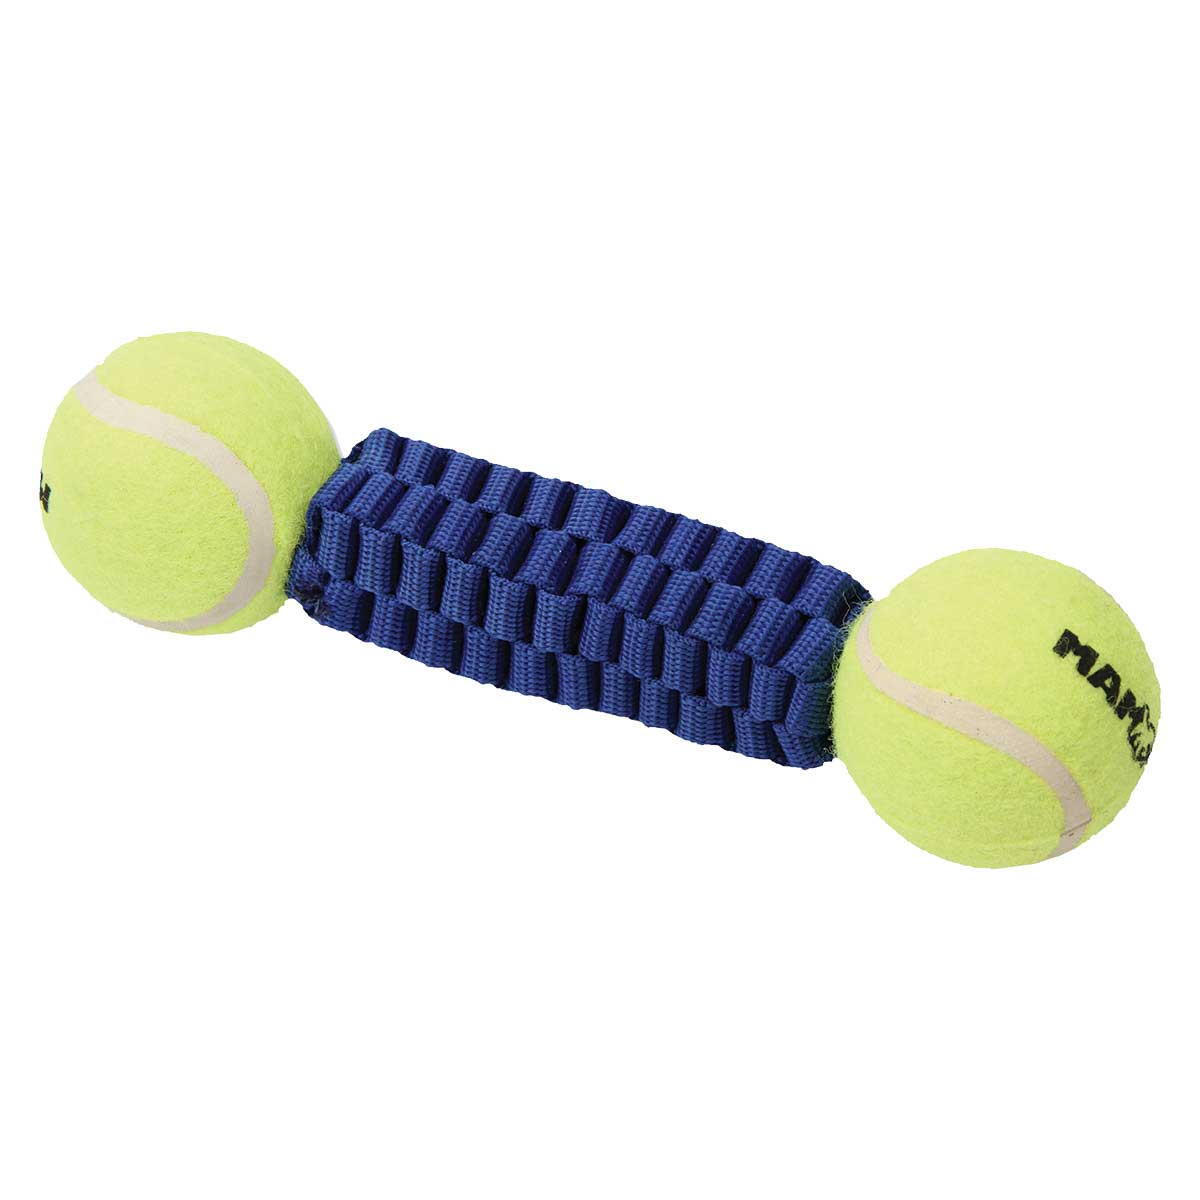 10 inch Mammoth Gnarlys with 2 Tennis Balls Dog Fetch Toy